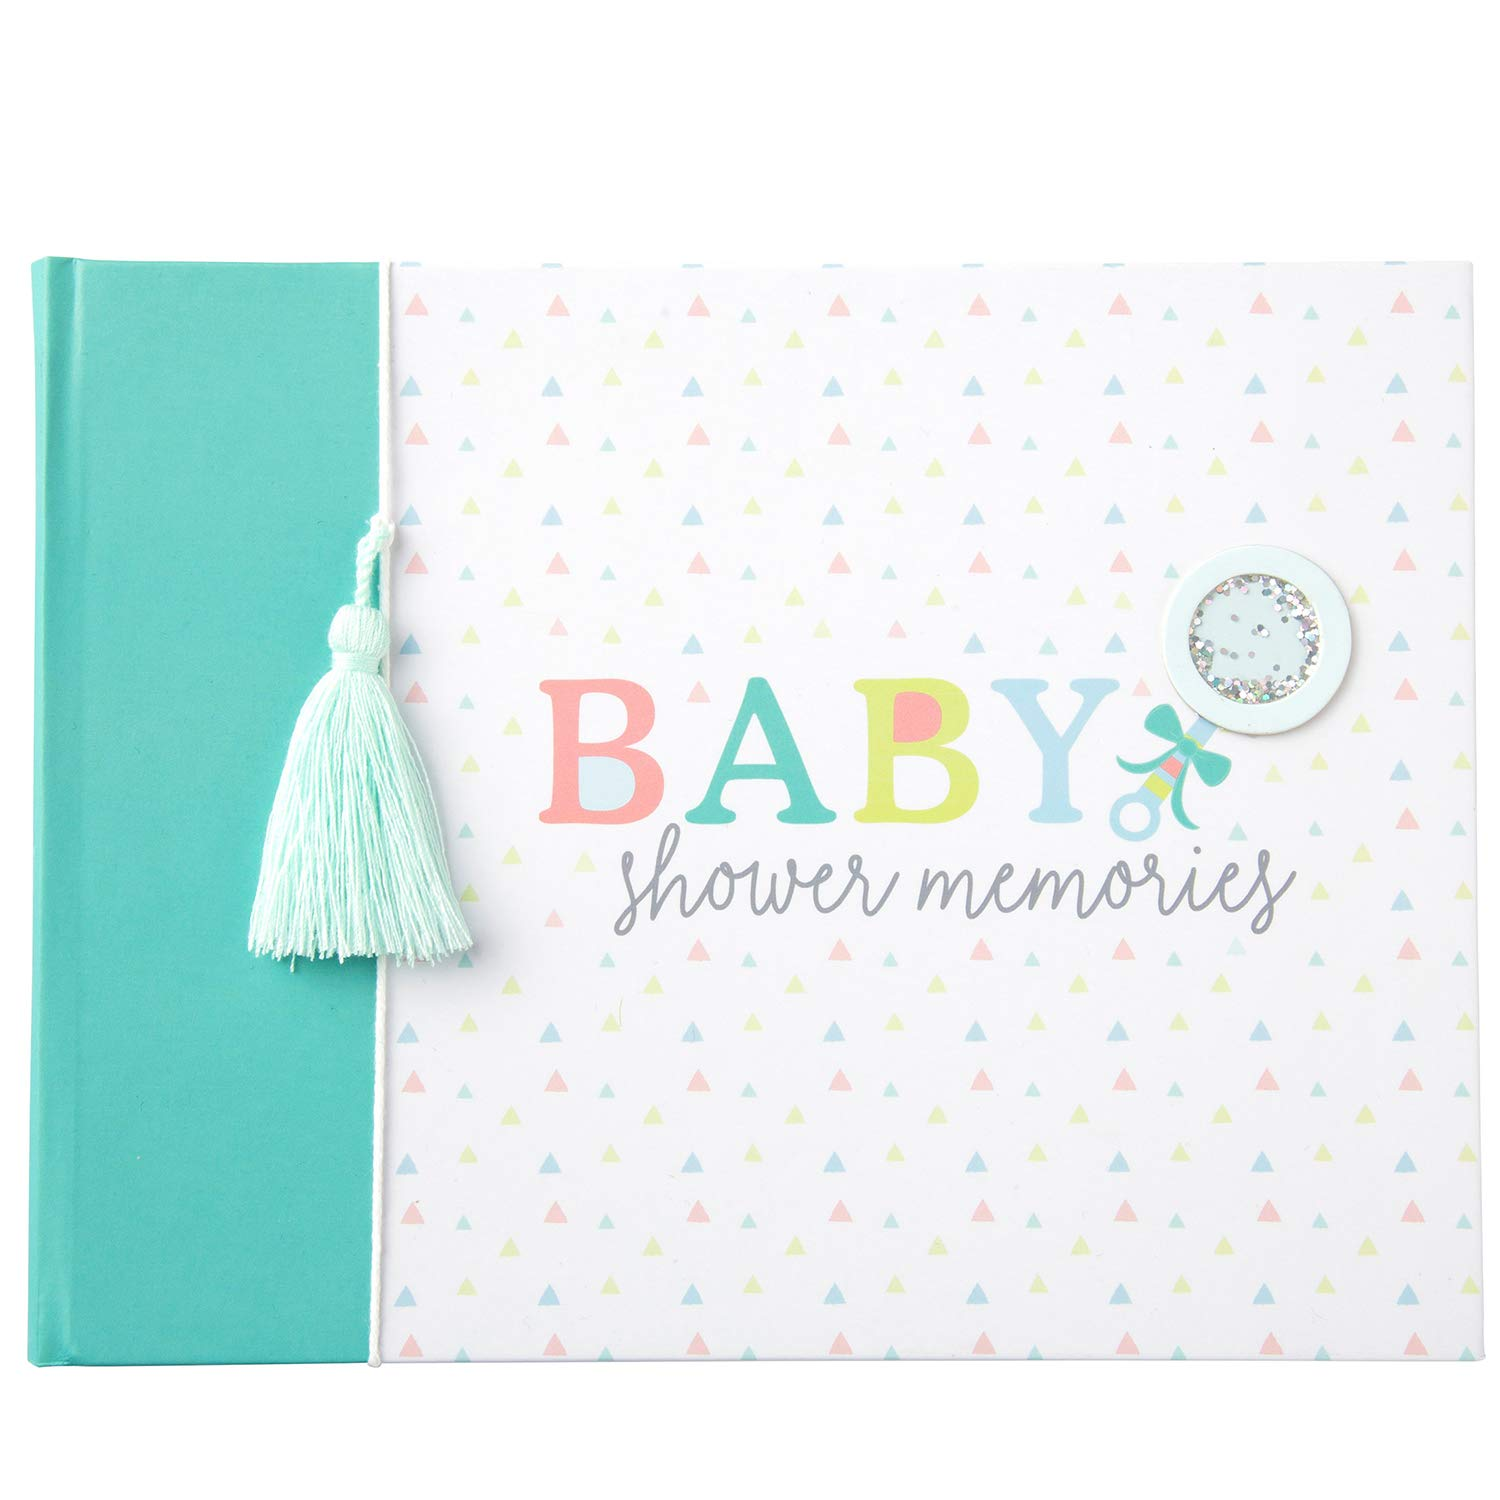 C.R. Gibson ''Baby Shower Memories'' Baby Keepsake Memory Book, 36 Pages, 9'' x 6.8''